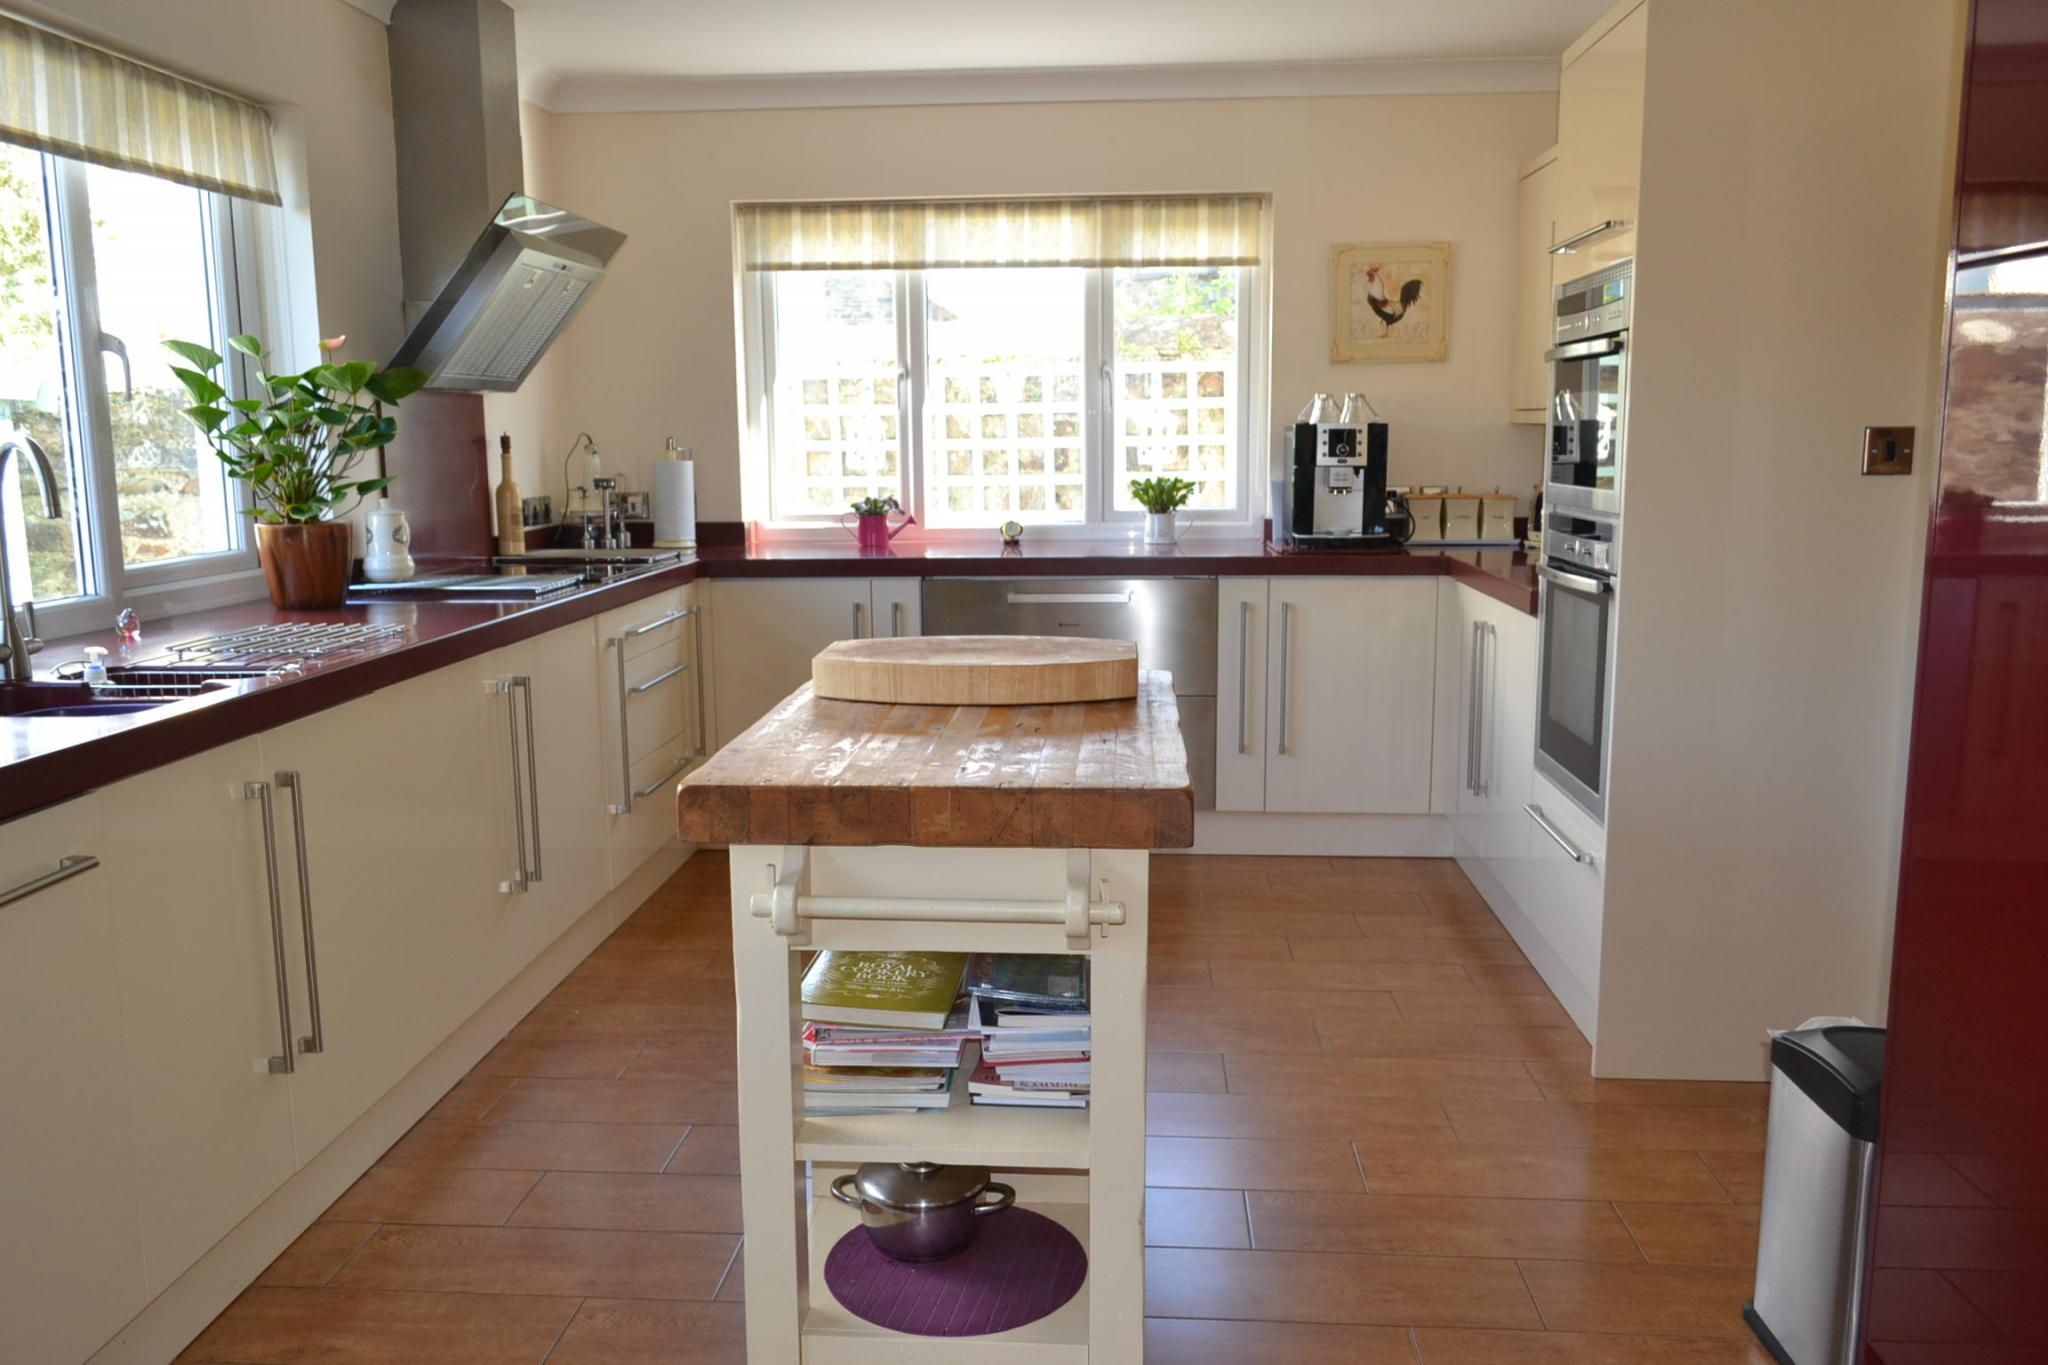 5 bedroom detached house For Sale in Port St Mary - Photograph 15